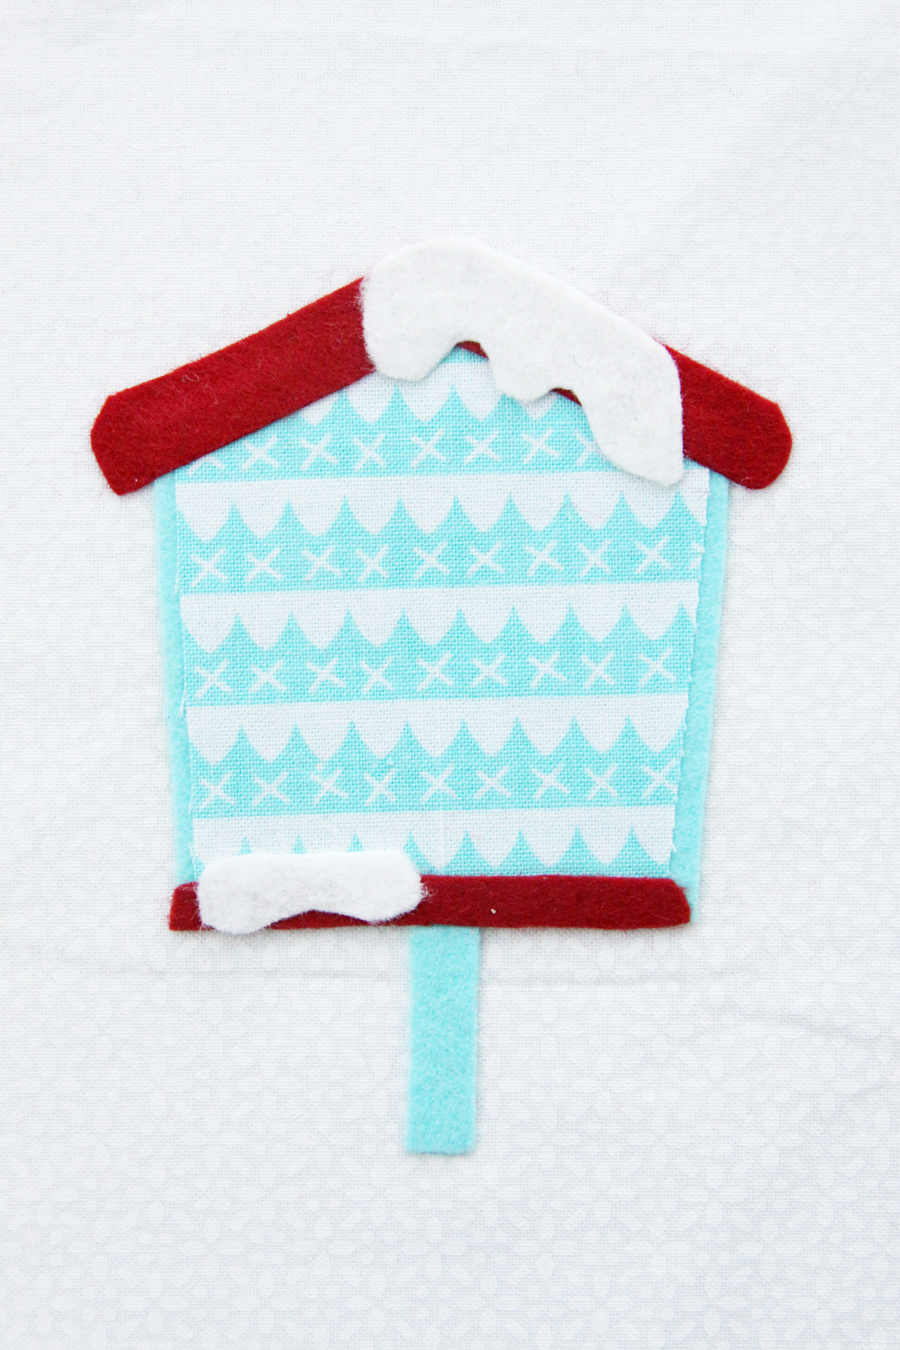 Sweet Fabric and Felt Birdhouse Hoop Ornament